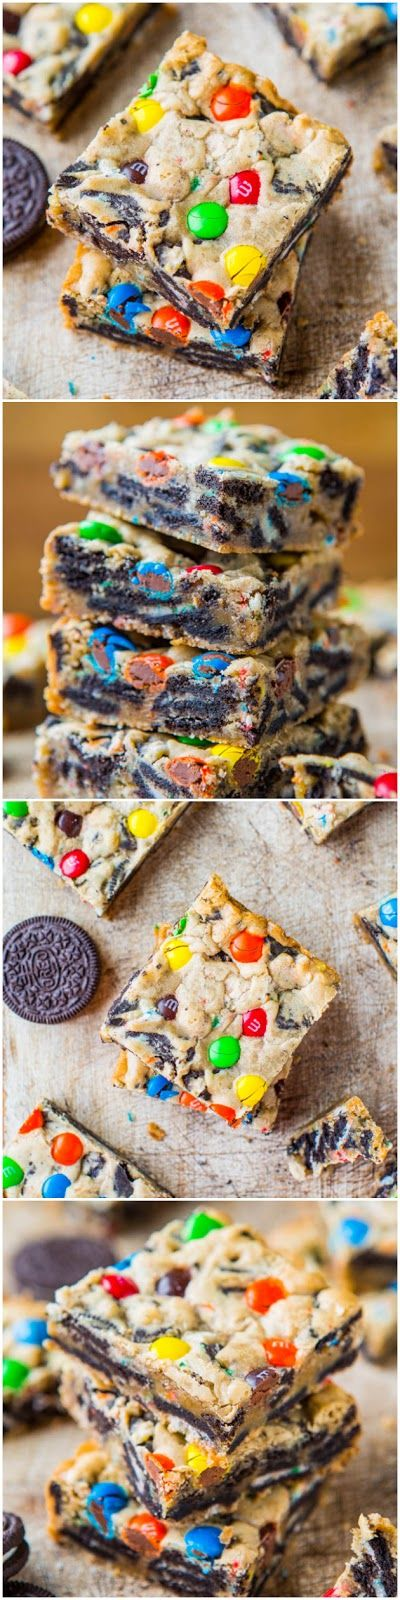 Loaded M&M Oreo Cookie Bars | These  dense bars are a texture lover's dream. There's an abundance of crunchy  chopped Oreos and M&M's, contrasted with soft, buttery, moist dough.